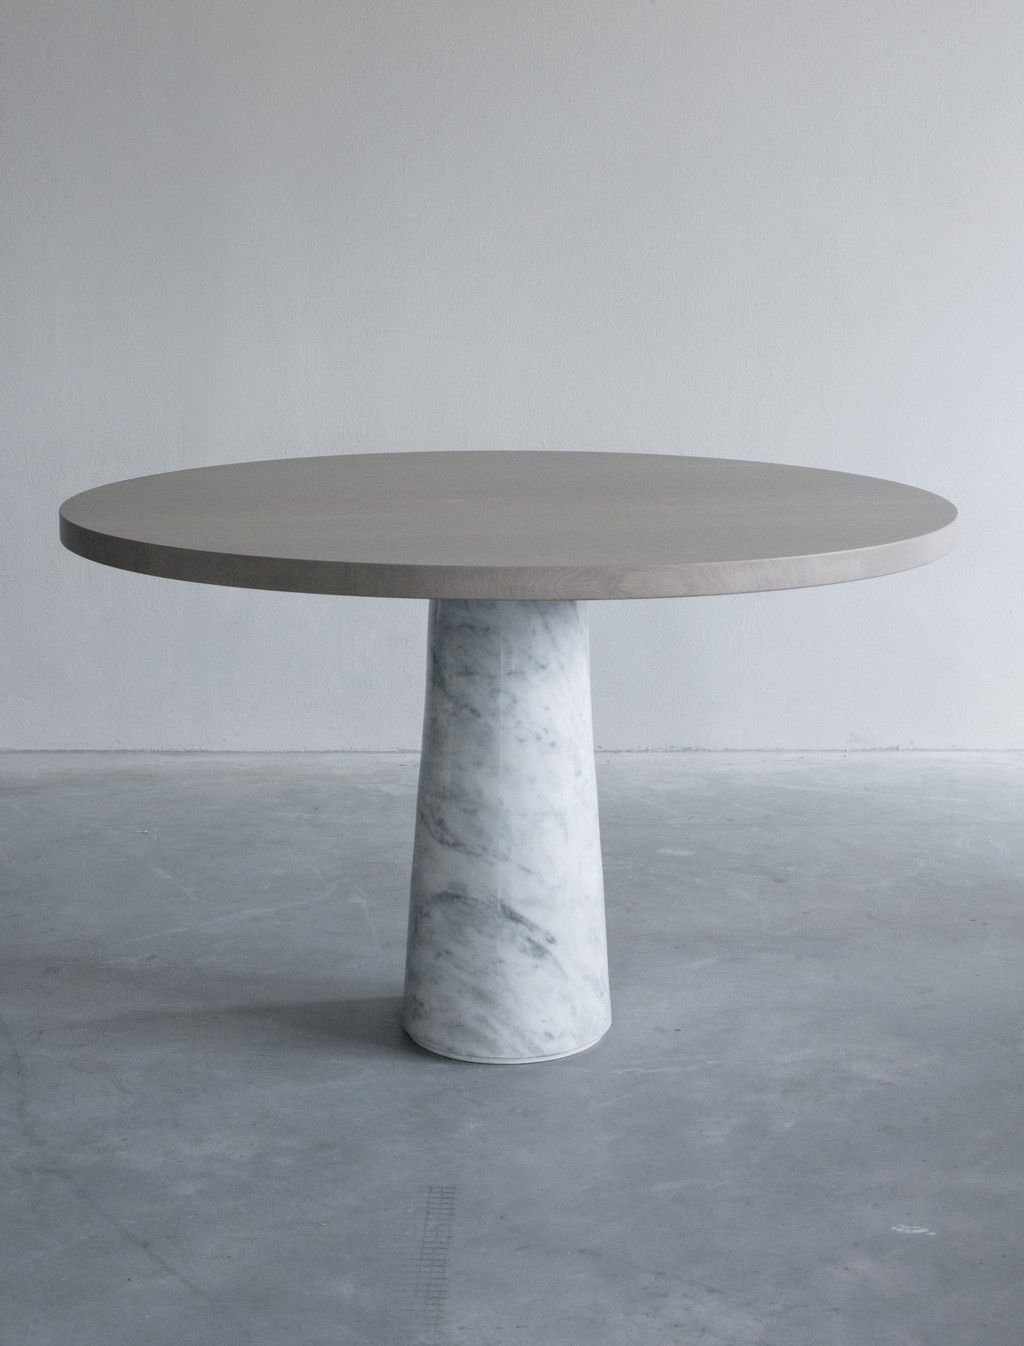 Stone Dining Table With Carrara Marble Base Eetkamertafel Met